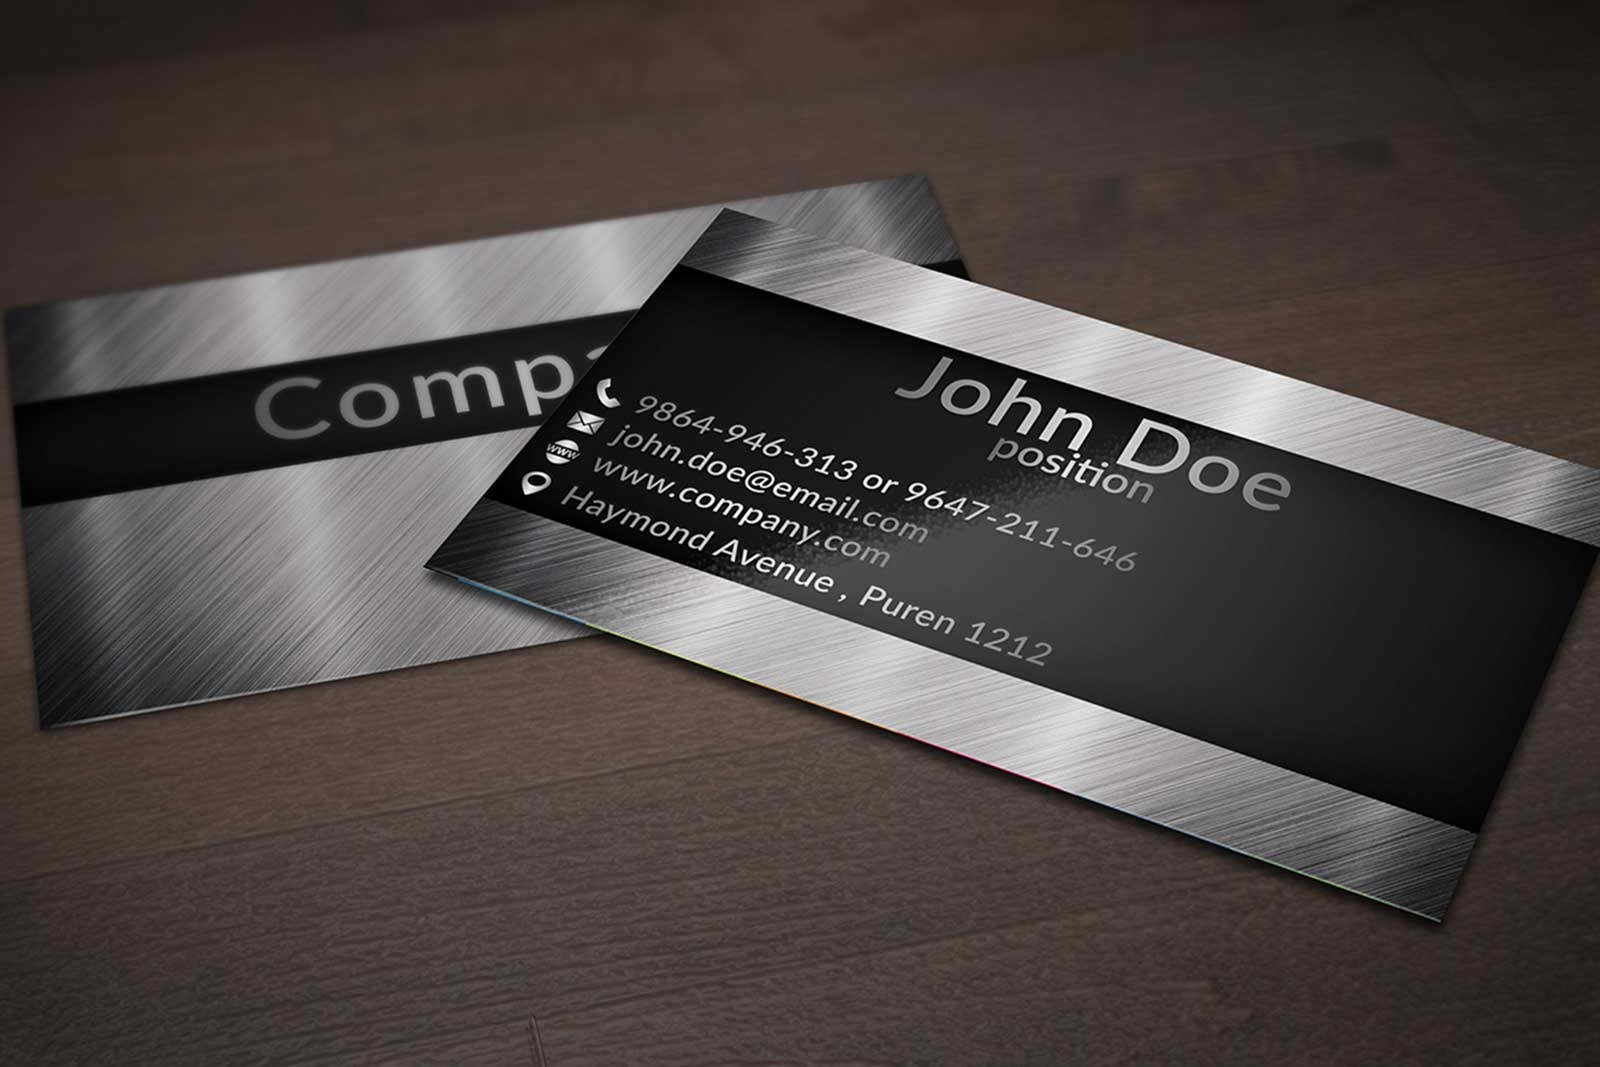 40 unique stylish psd corporate business card designs for free creative business card design on brushed background wajeb Choice Image